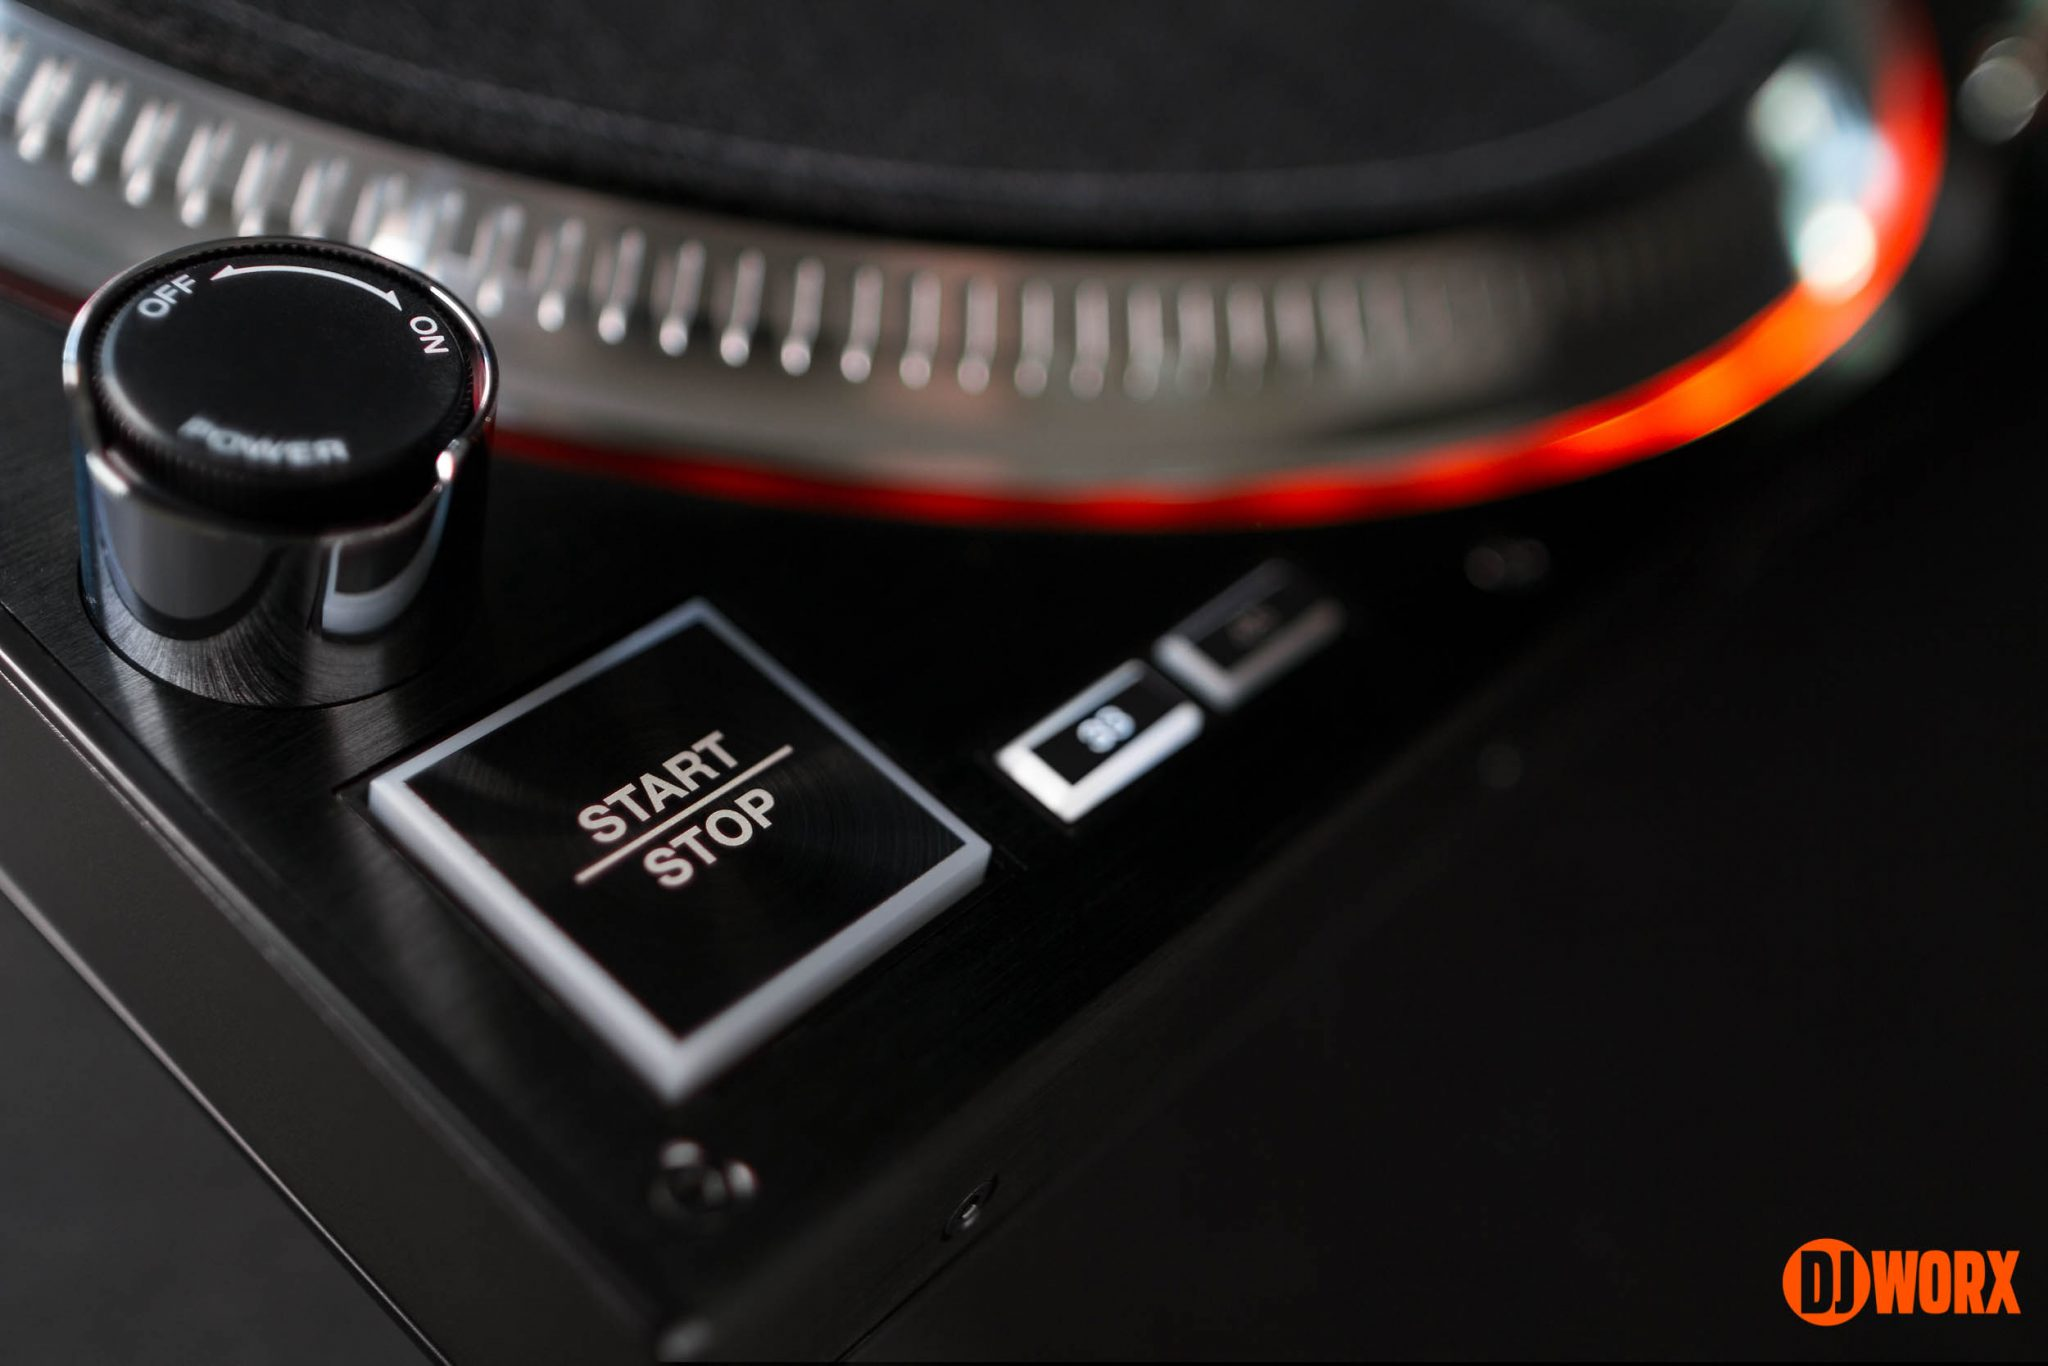 Denon DJ L12 Prime turntable review DJWORX (17)